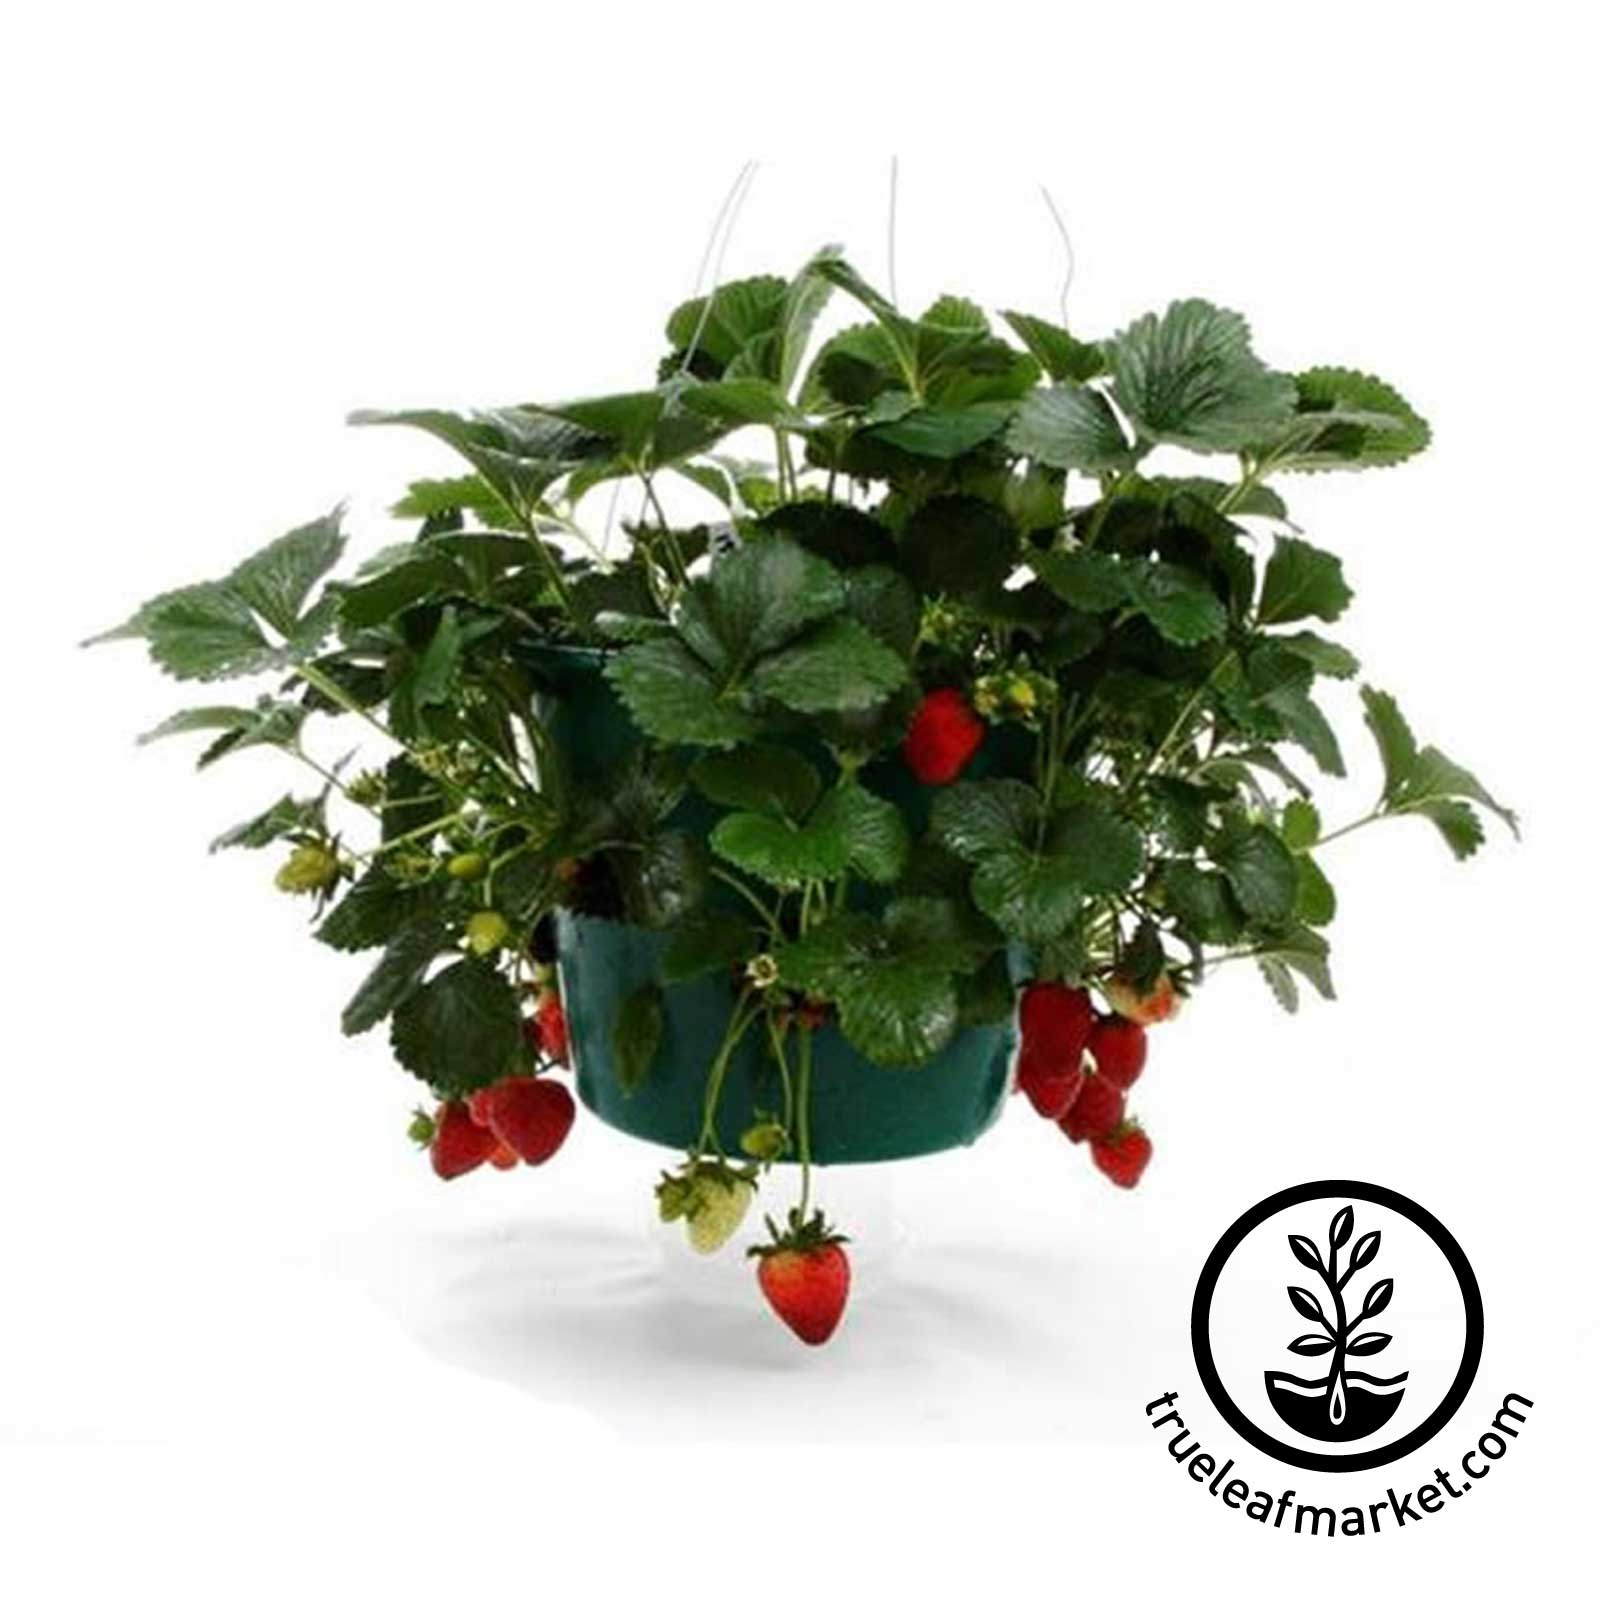 Hanging strawberry garden kit